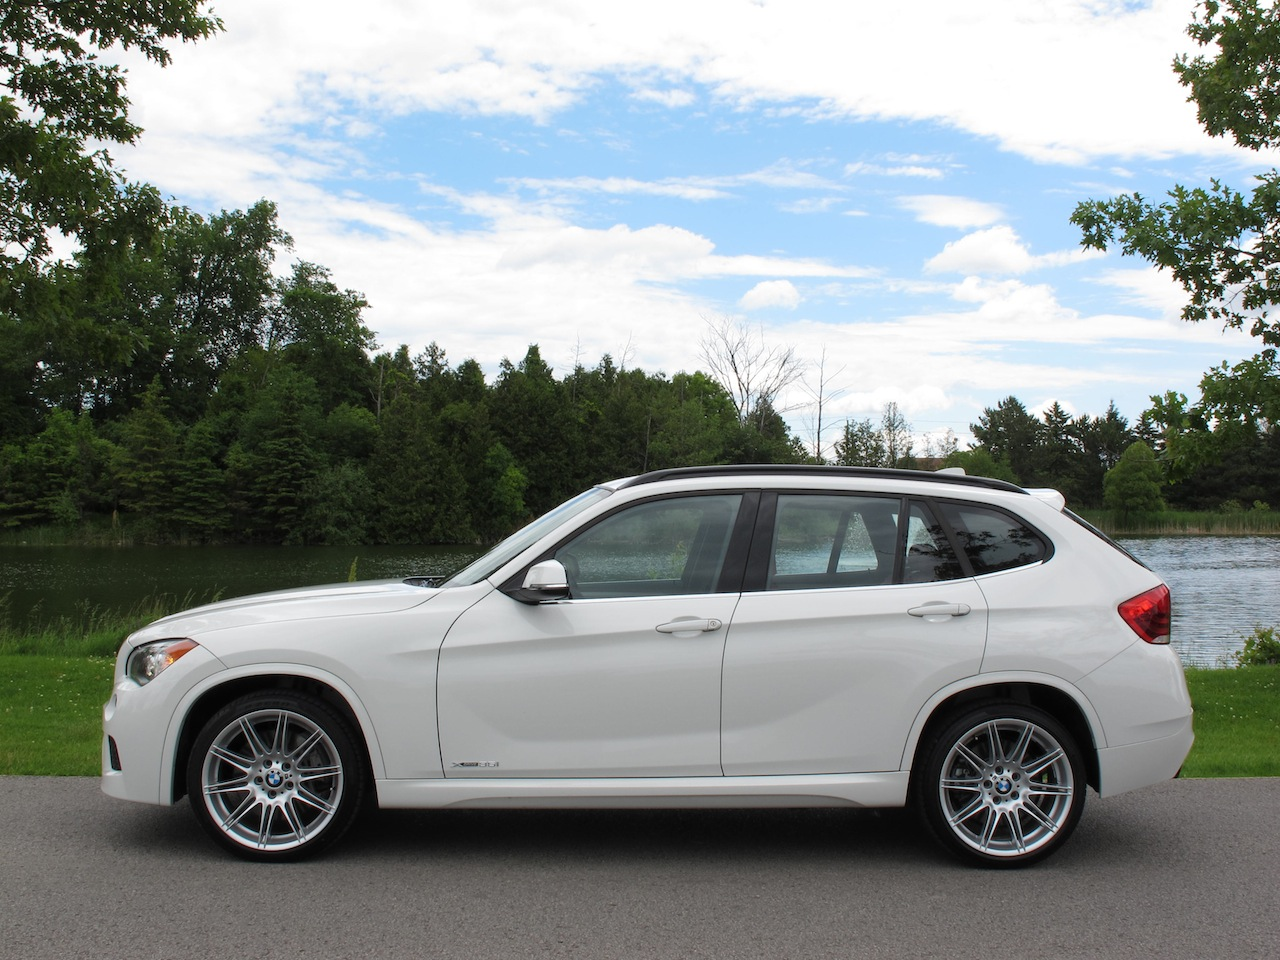 2013 BMW X1 xDrive35i MSport Review  Cars Photos Test Drives